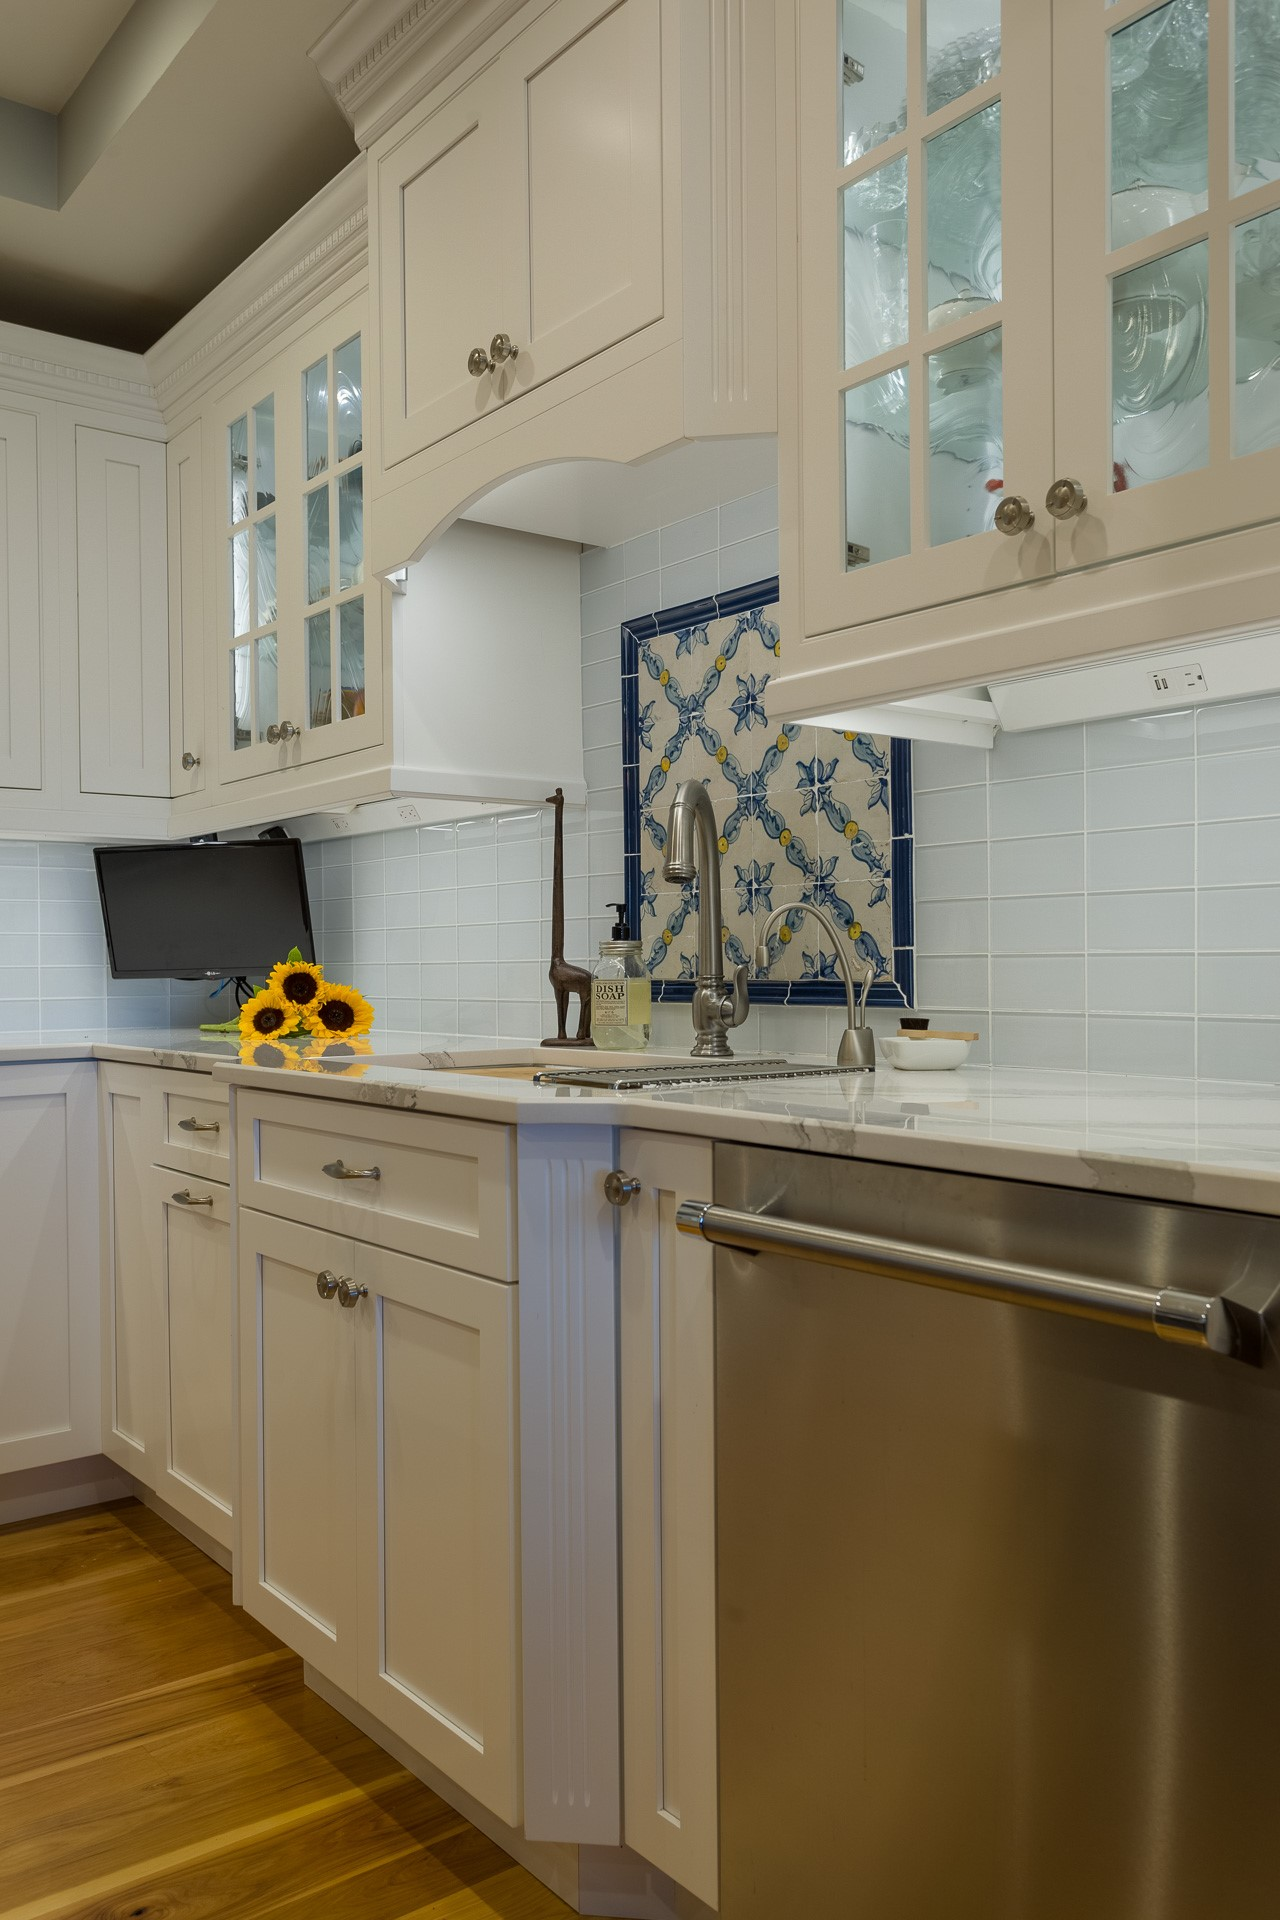 Blue and Yellow Backsplash